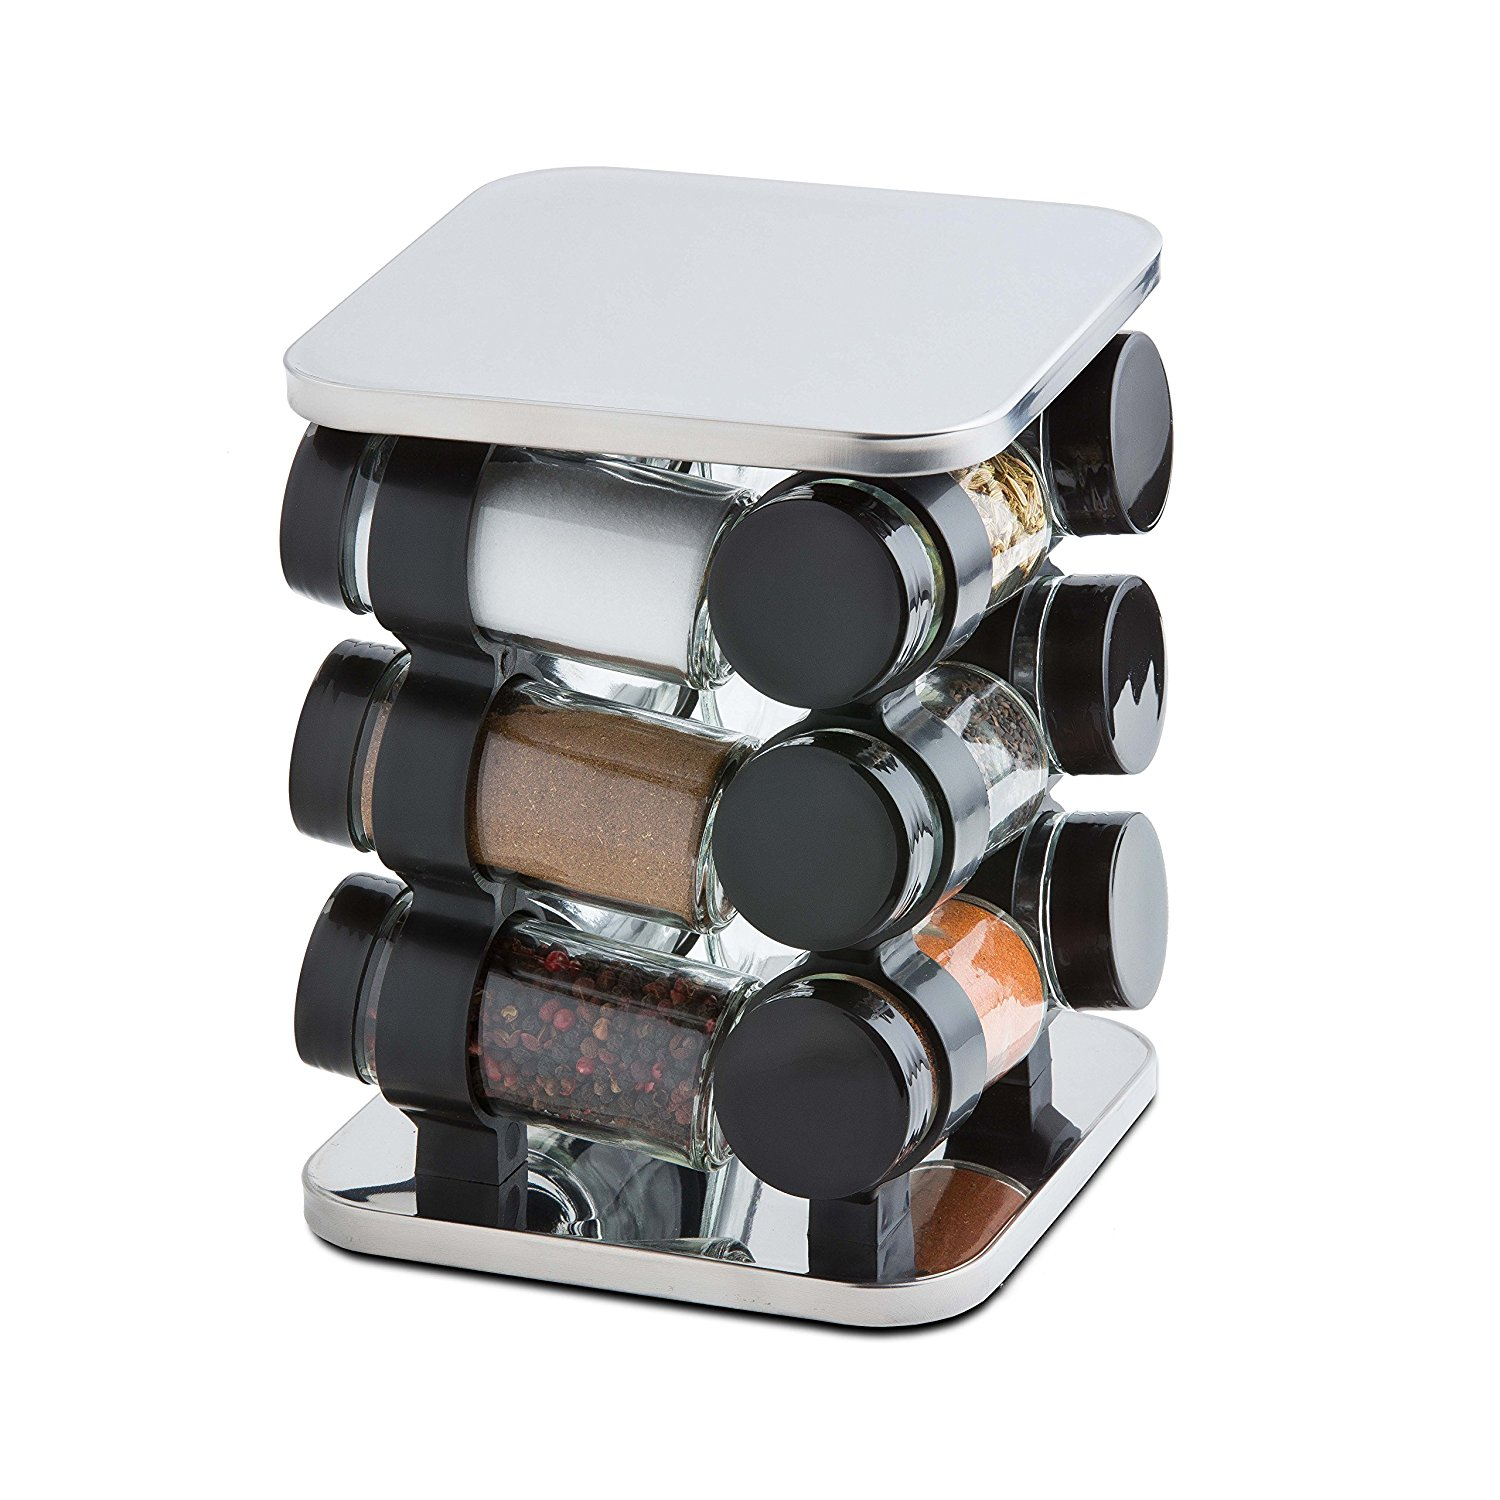 ModernHome 12 Piece Stainless Steel Spice Rack Carousel, Silver by